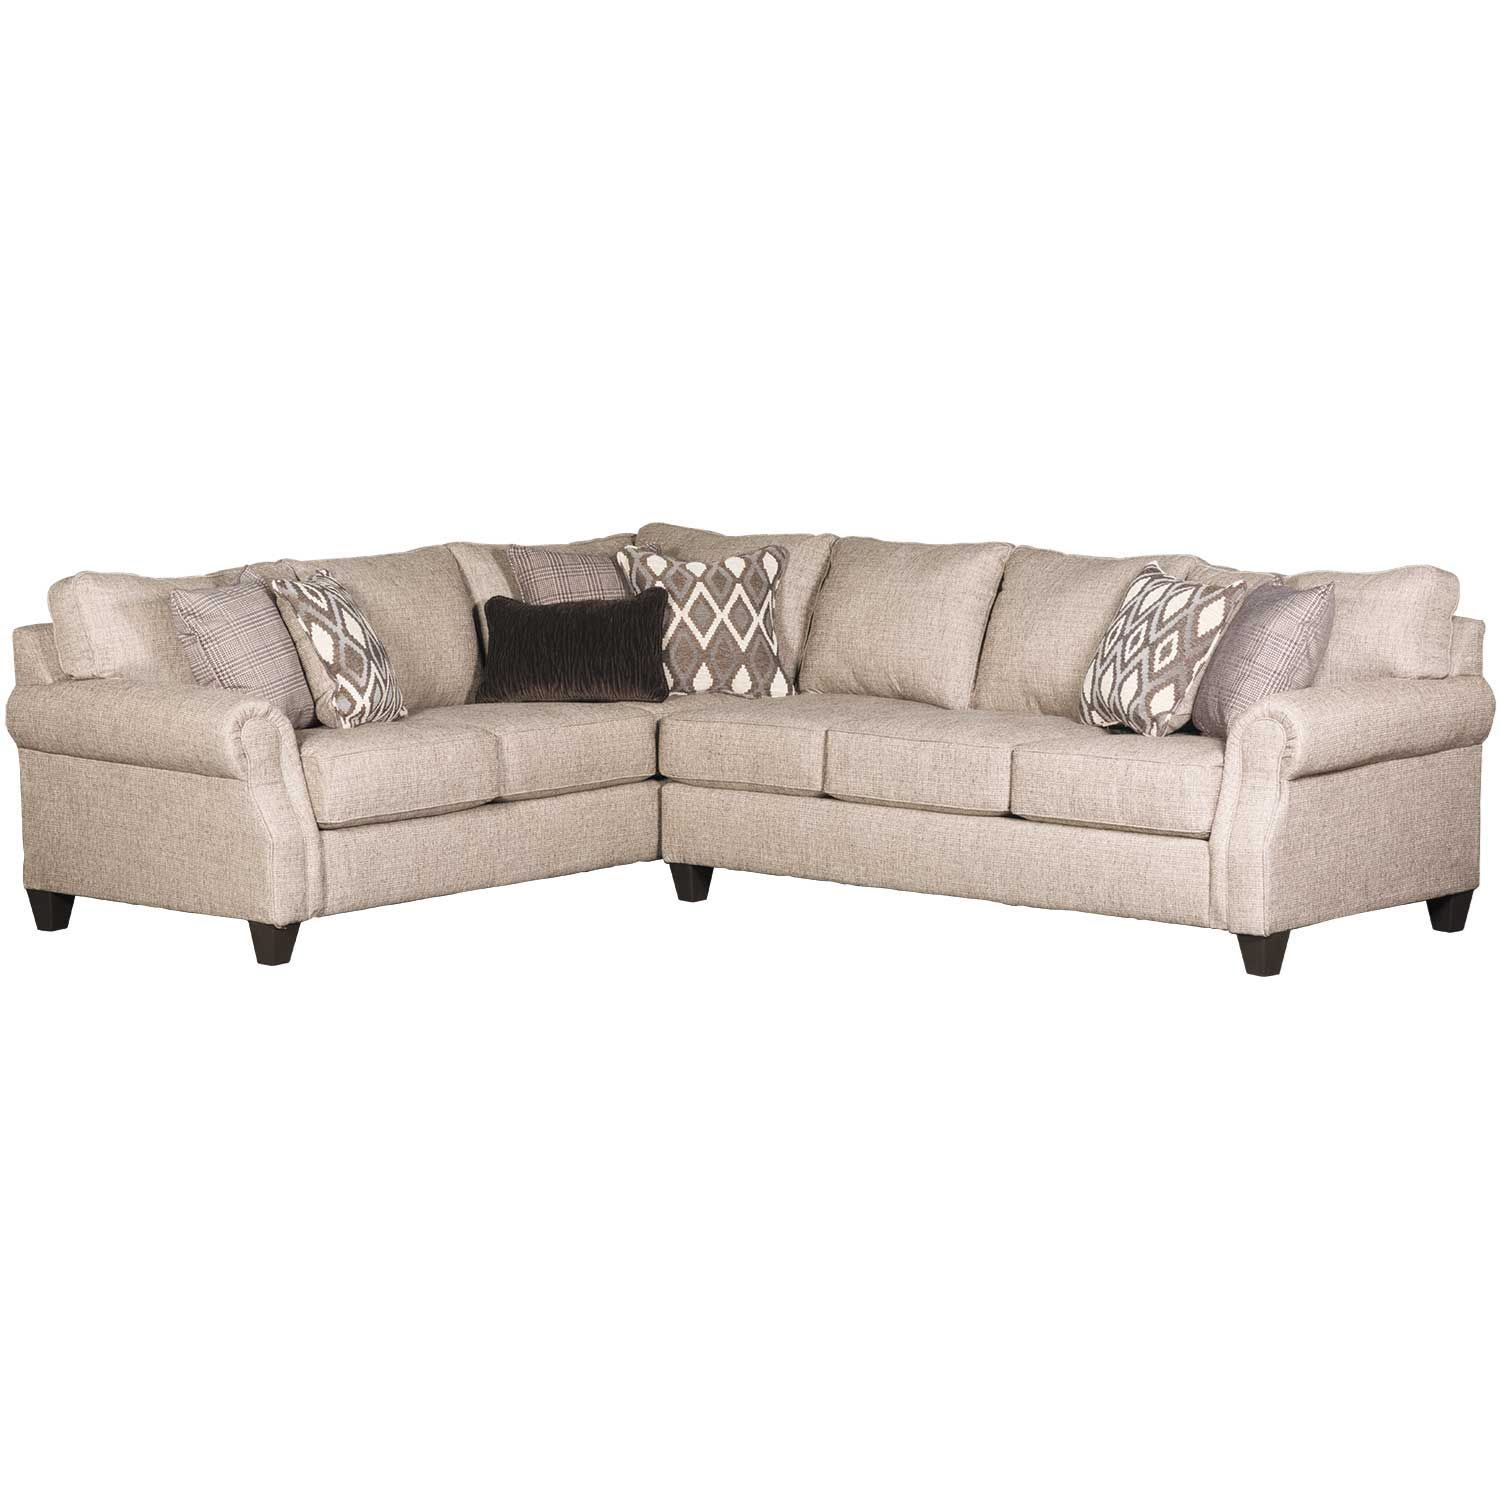 Astonishing Oconnor Clove 2 Piece Sectional Caraccident5 Cool Chair Designs And Ideas Caraccident5Info